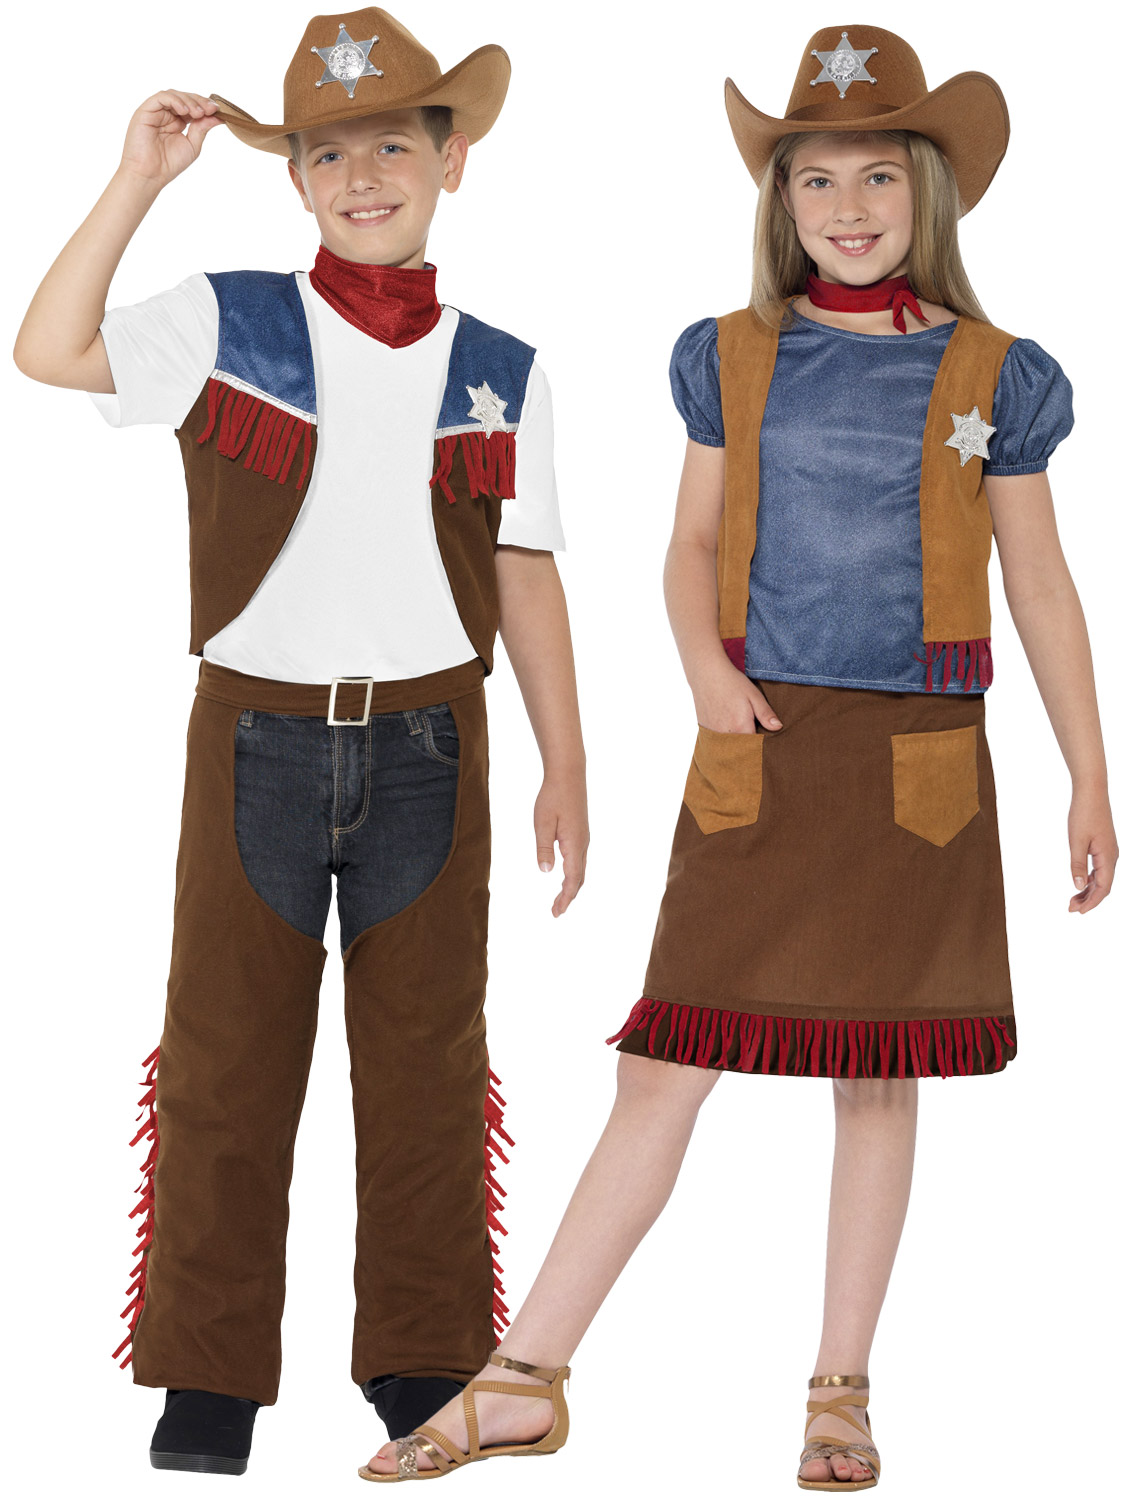 Is your child going to a Cowboy and Indian themed party or maybe dressing up for Book Week? These Kids Cowboy / Cowgirl costumes would be ideal!  sc 1 st  eBay & Childrens Cowboy Costume Boys Girls Western Texas Cowgirl Fancy ...